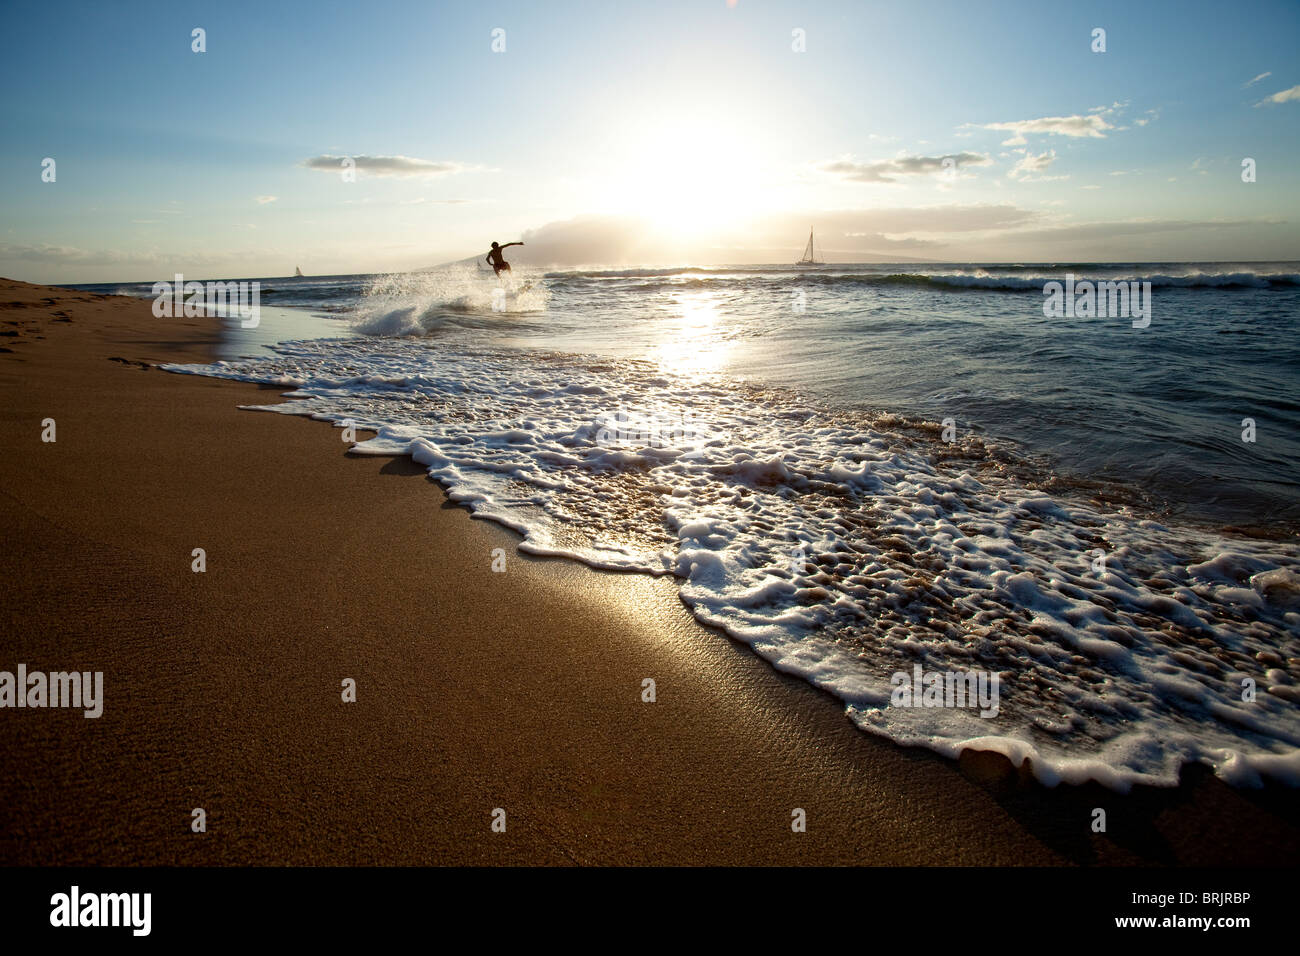 One man skimboarding at sunset with sailboats in the background. - Stock Image